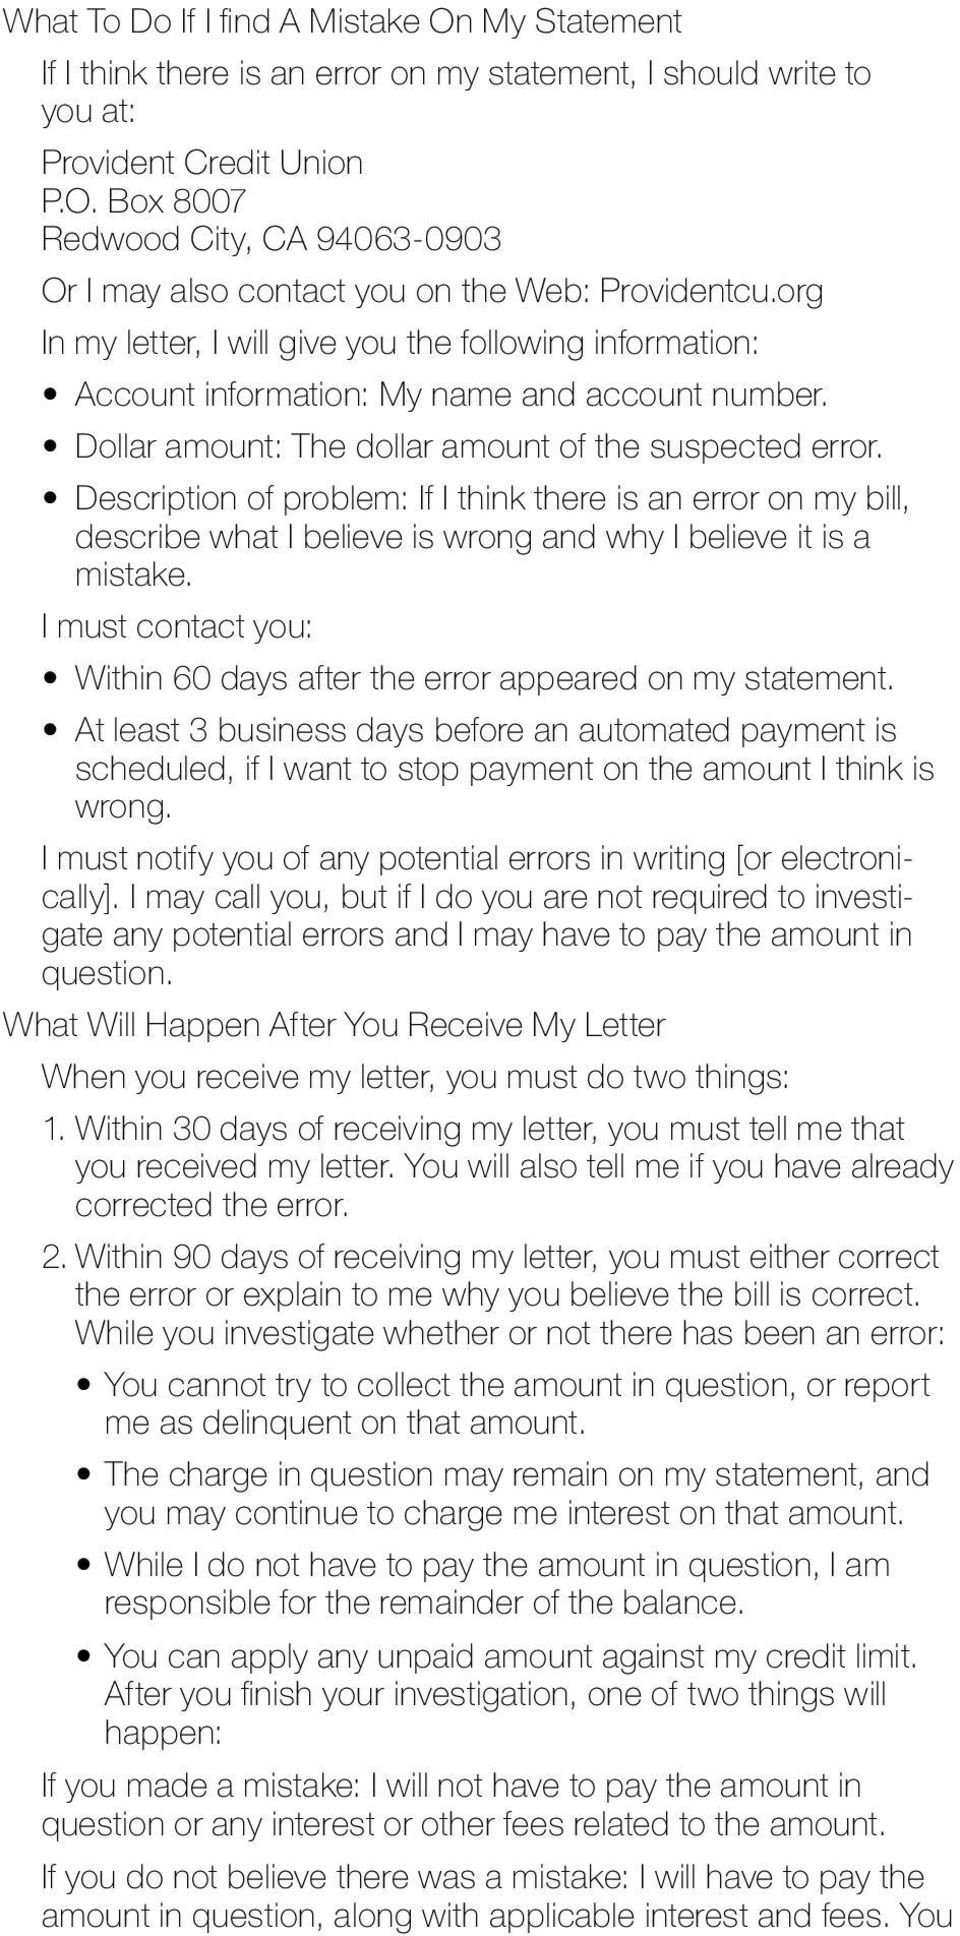 Description of problem: If I think there is an error on my bill, describe what I believe is wrong and why I believe it is a mistake.